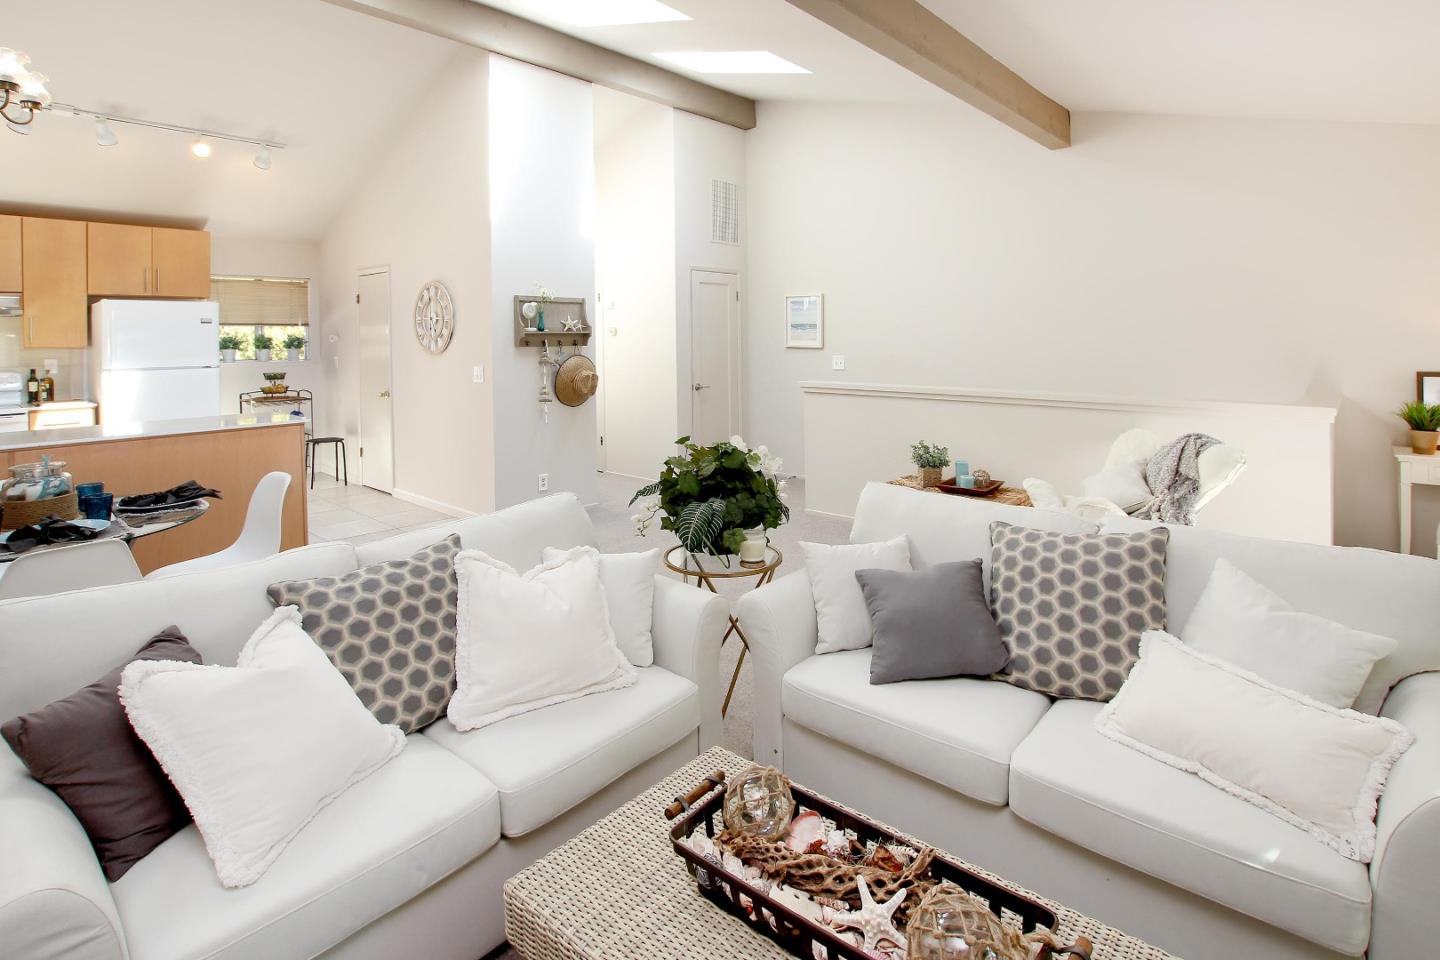 Serene townhouse sitting on the rodeo gulch greenbelt. Centrally located and walking/biking distance to Capitola's beaches, shopping, and dining... close to everything, this location can't be beat! The reverse floor plan with vaulted ceilings and skylights in the living room allows an abundance of natural light. Set far off 30th avenue privacy abounds in a treehouse like setting, you would never know you're in the middle of town. Fresh paint, updated kitchen and bath with quartz countertops. This house is ready for you to call your own!